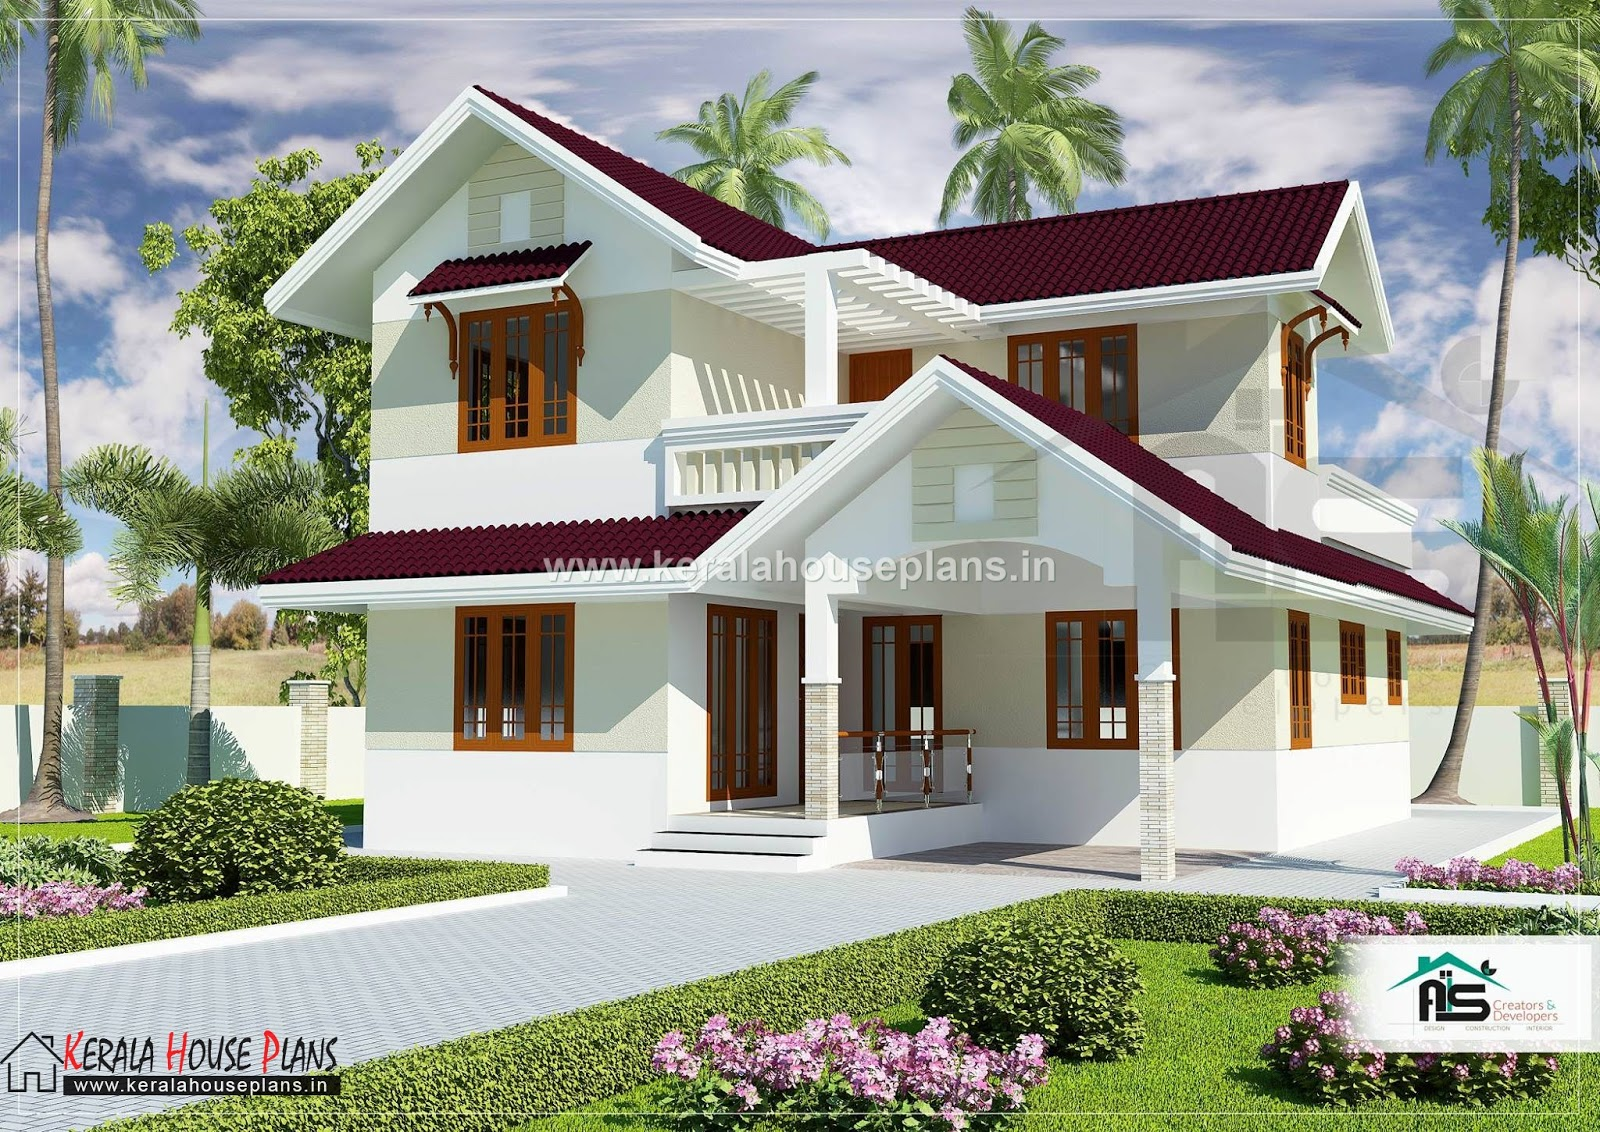 Kerala model house plans with elevation 1829 sqft kerala for Kerala home designs com